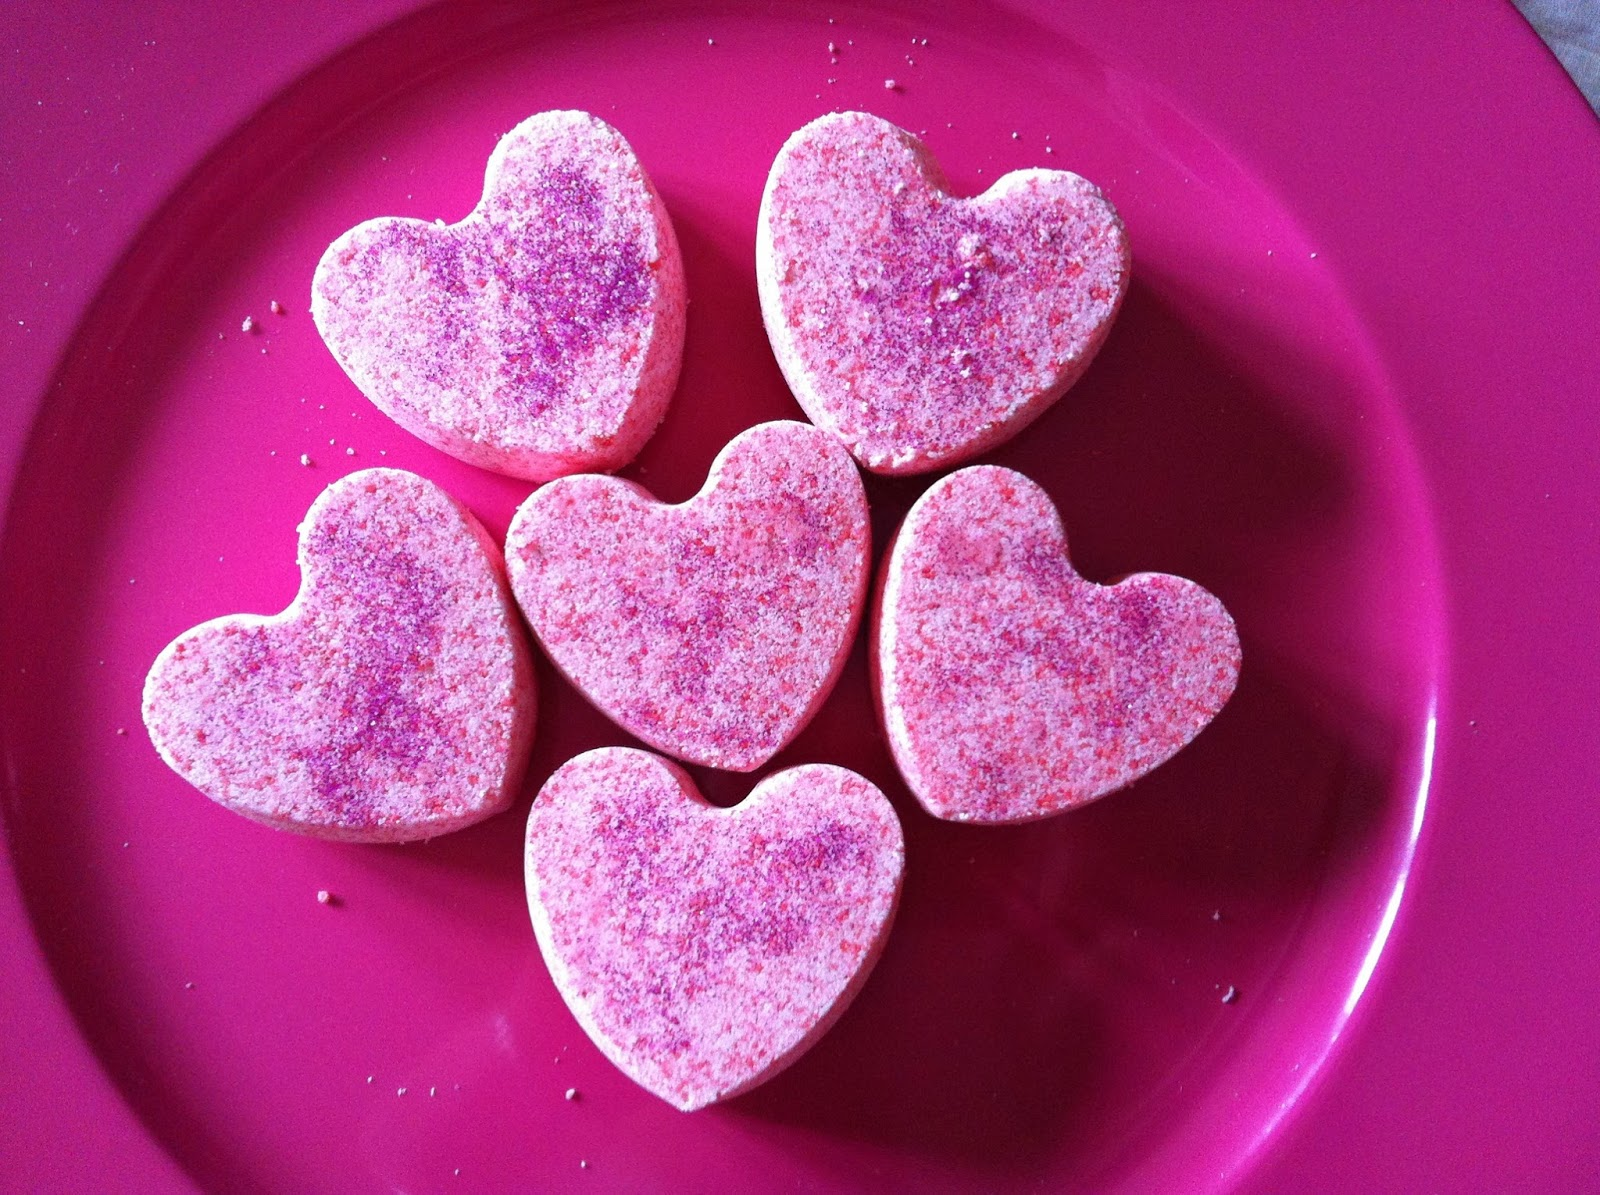 http://serenaloserlikeme.blogspot.it/2014/01/valentines-day-gift-idea-diy-lush.html